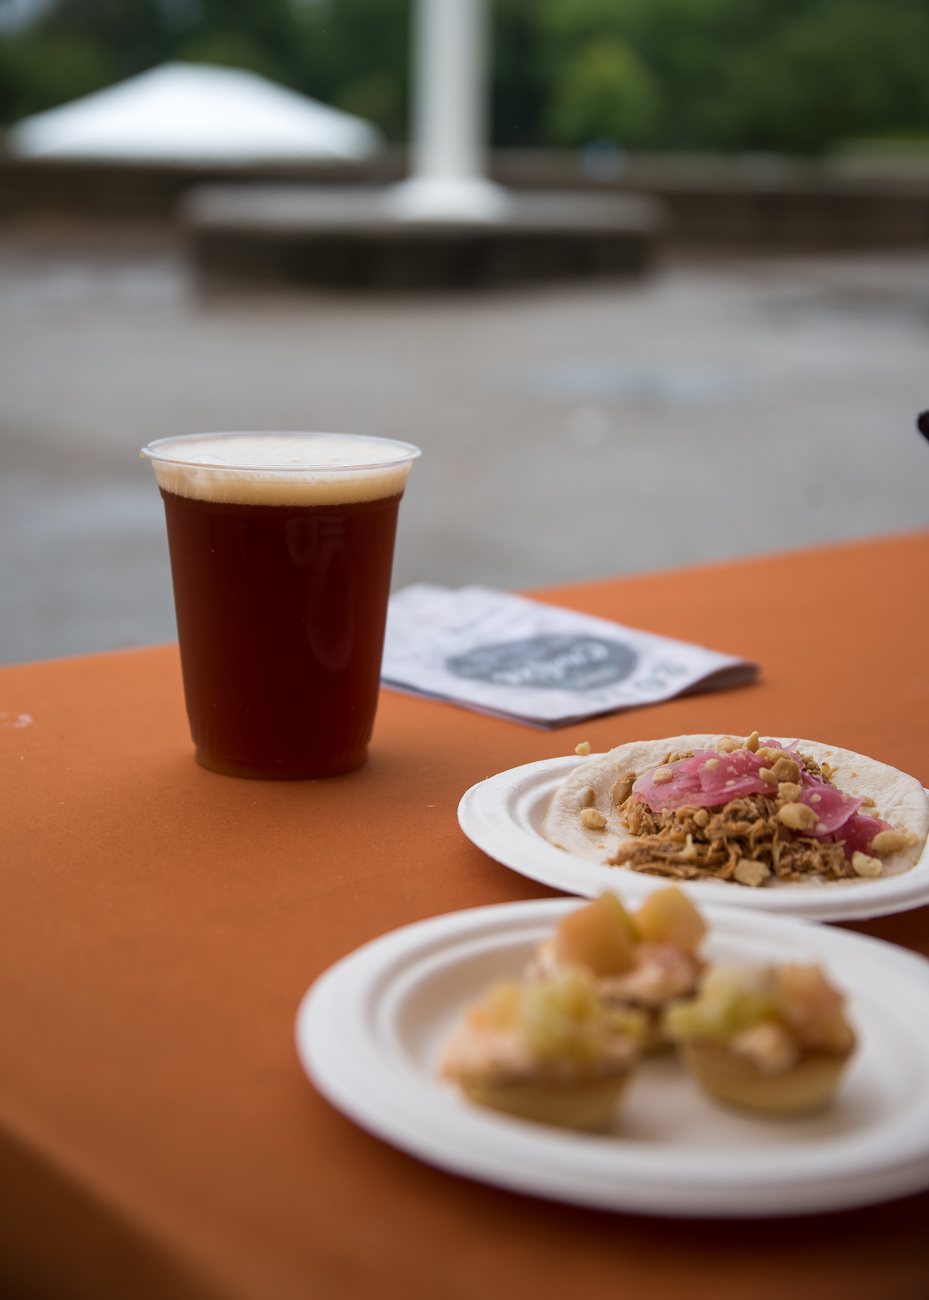 Chicken tacos and a Scotch Ale from the 50 West tent / Image: Amie Santavicca // Published: 7.22.18